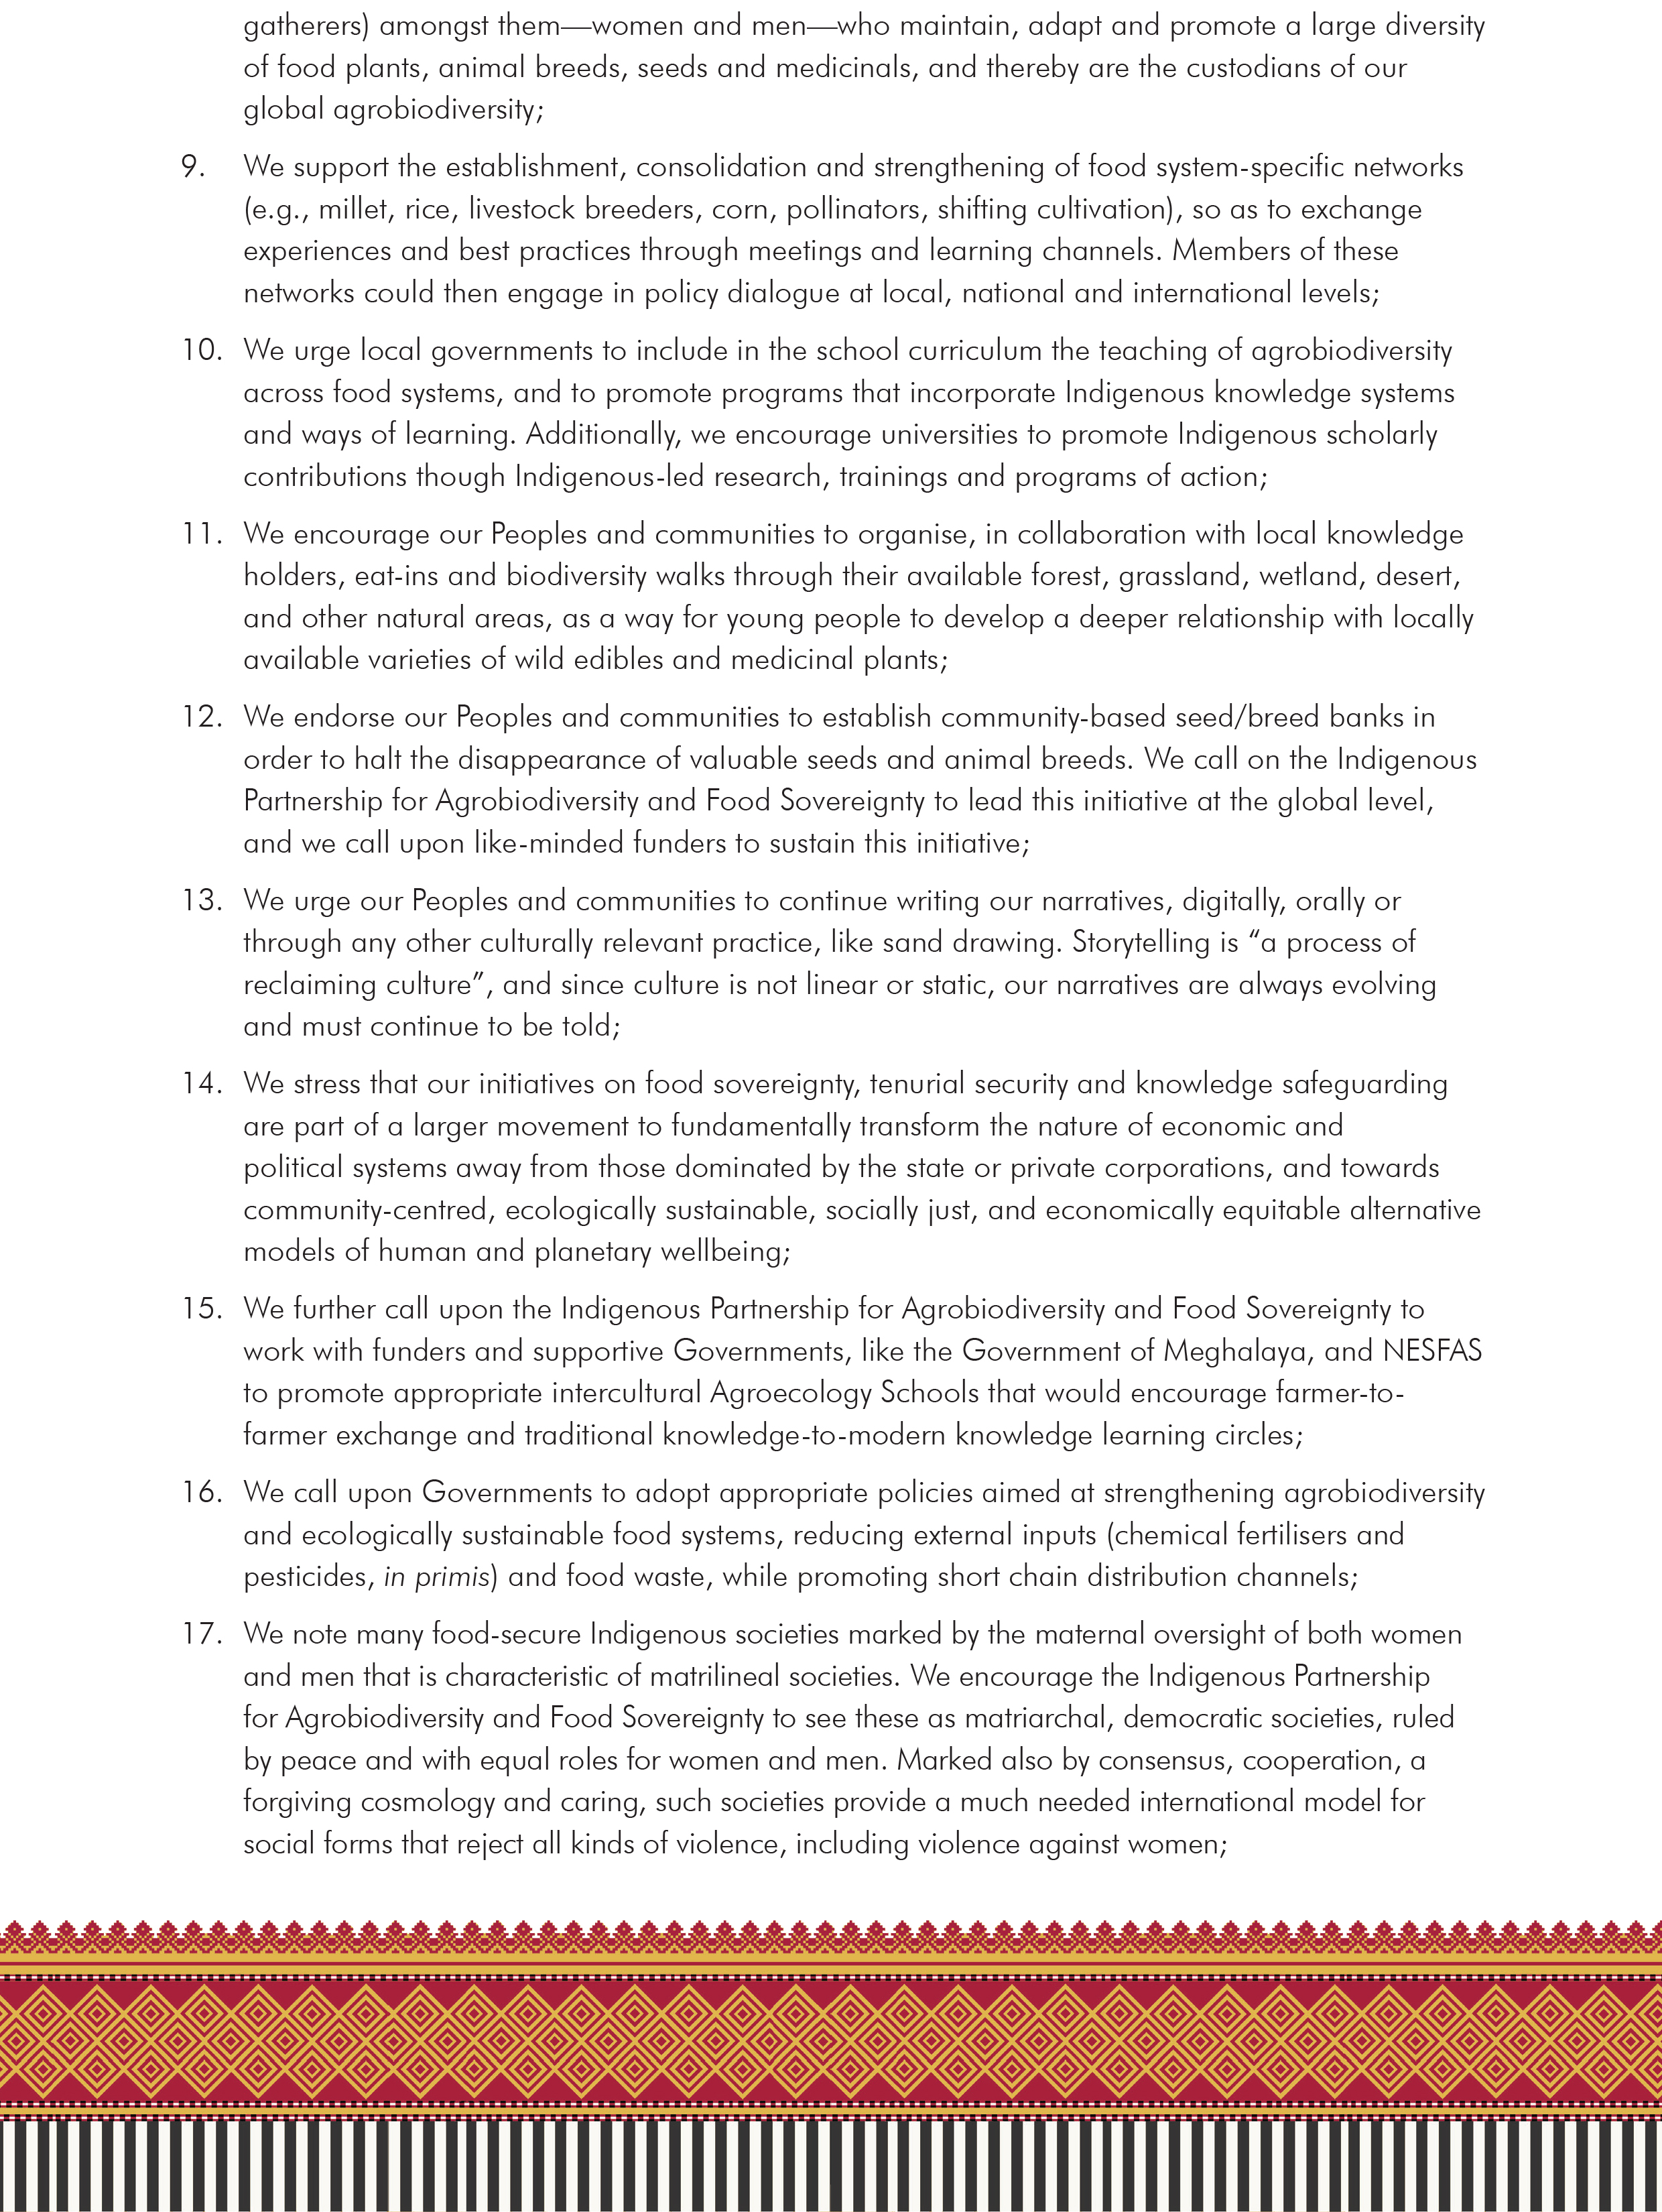 3 THE SHILLONG DECLARATION_English_7 March 2016-3